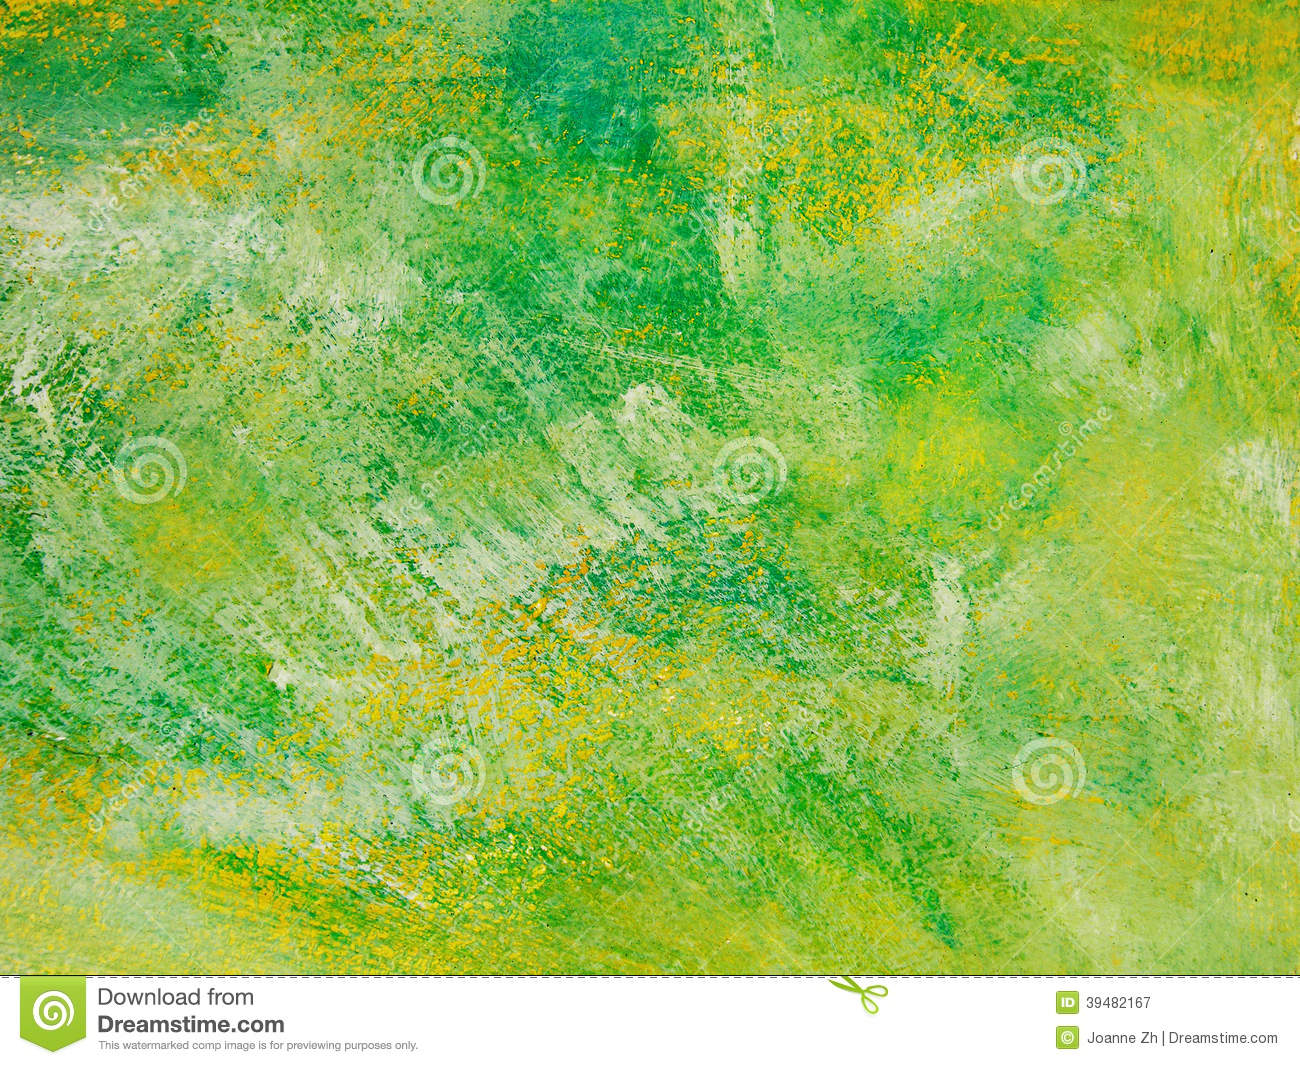 Green & yellow brush painted texture artistic